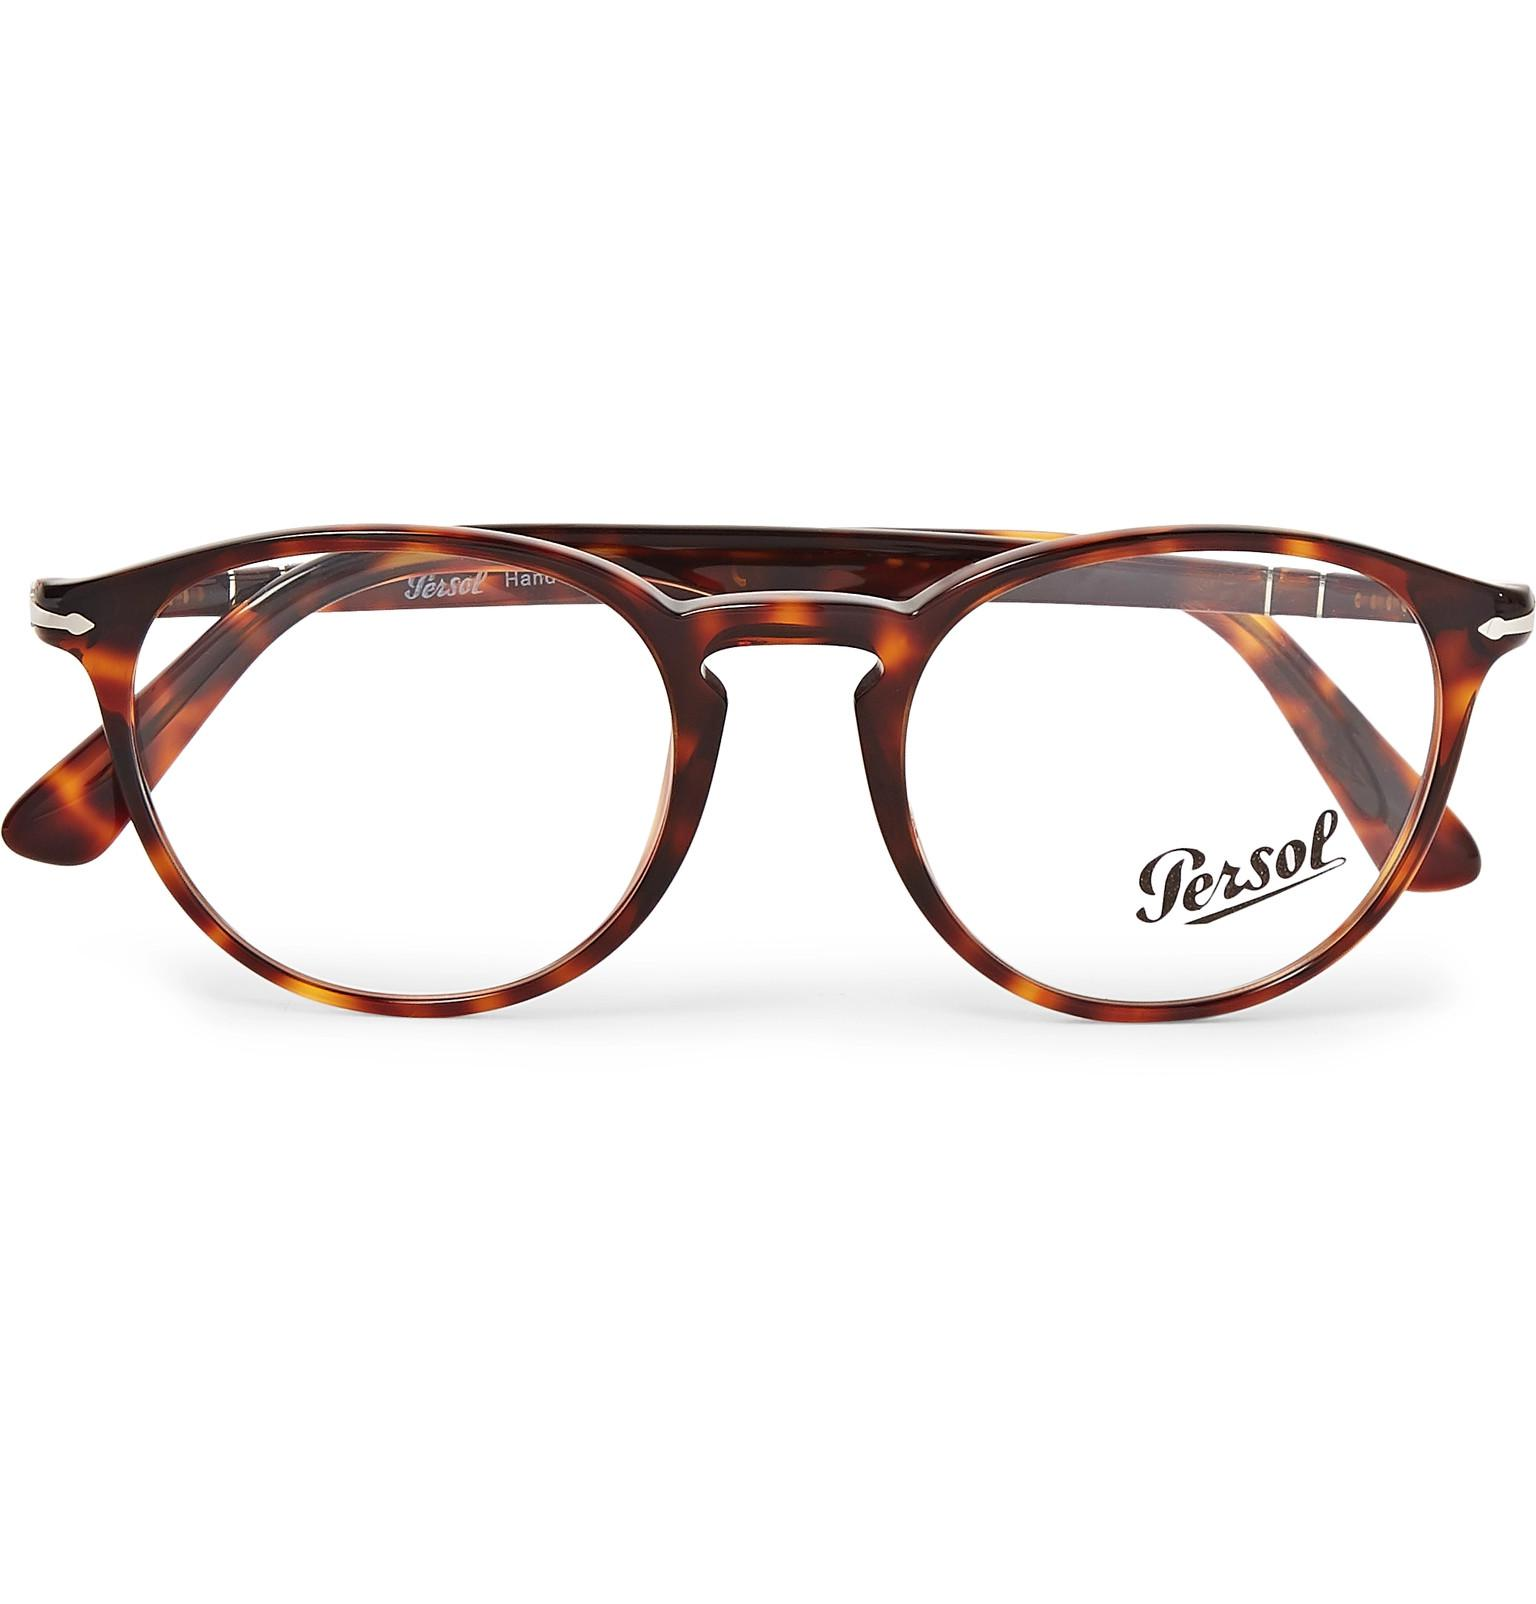 e05f12deb47 Lyst - Persol Round-frame Tortoiseshell Acetate Optical Glasses in ...